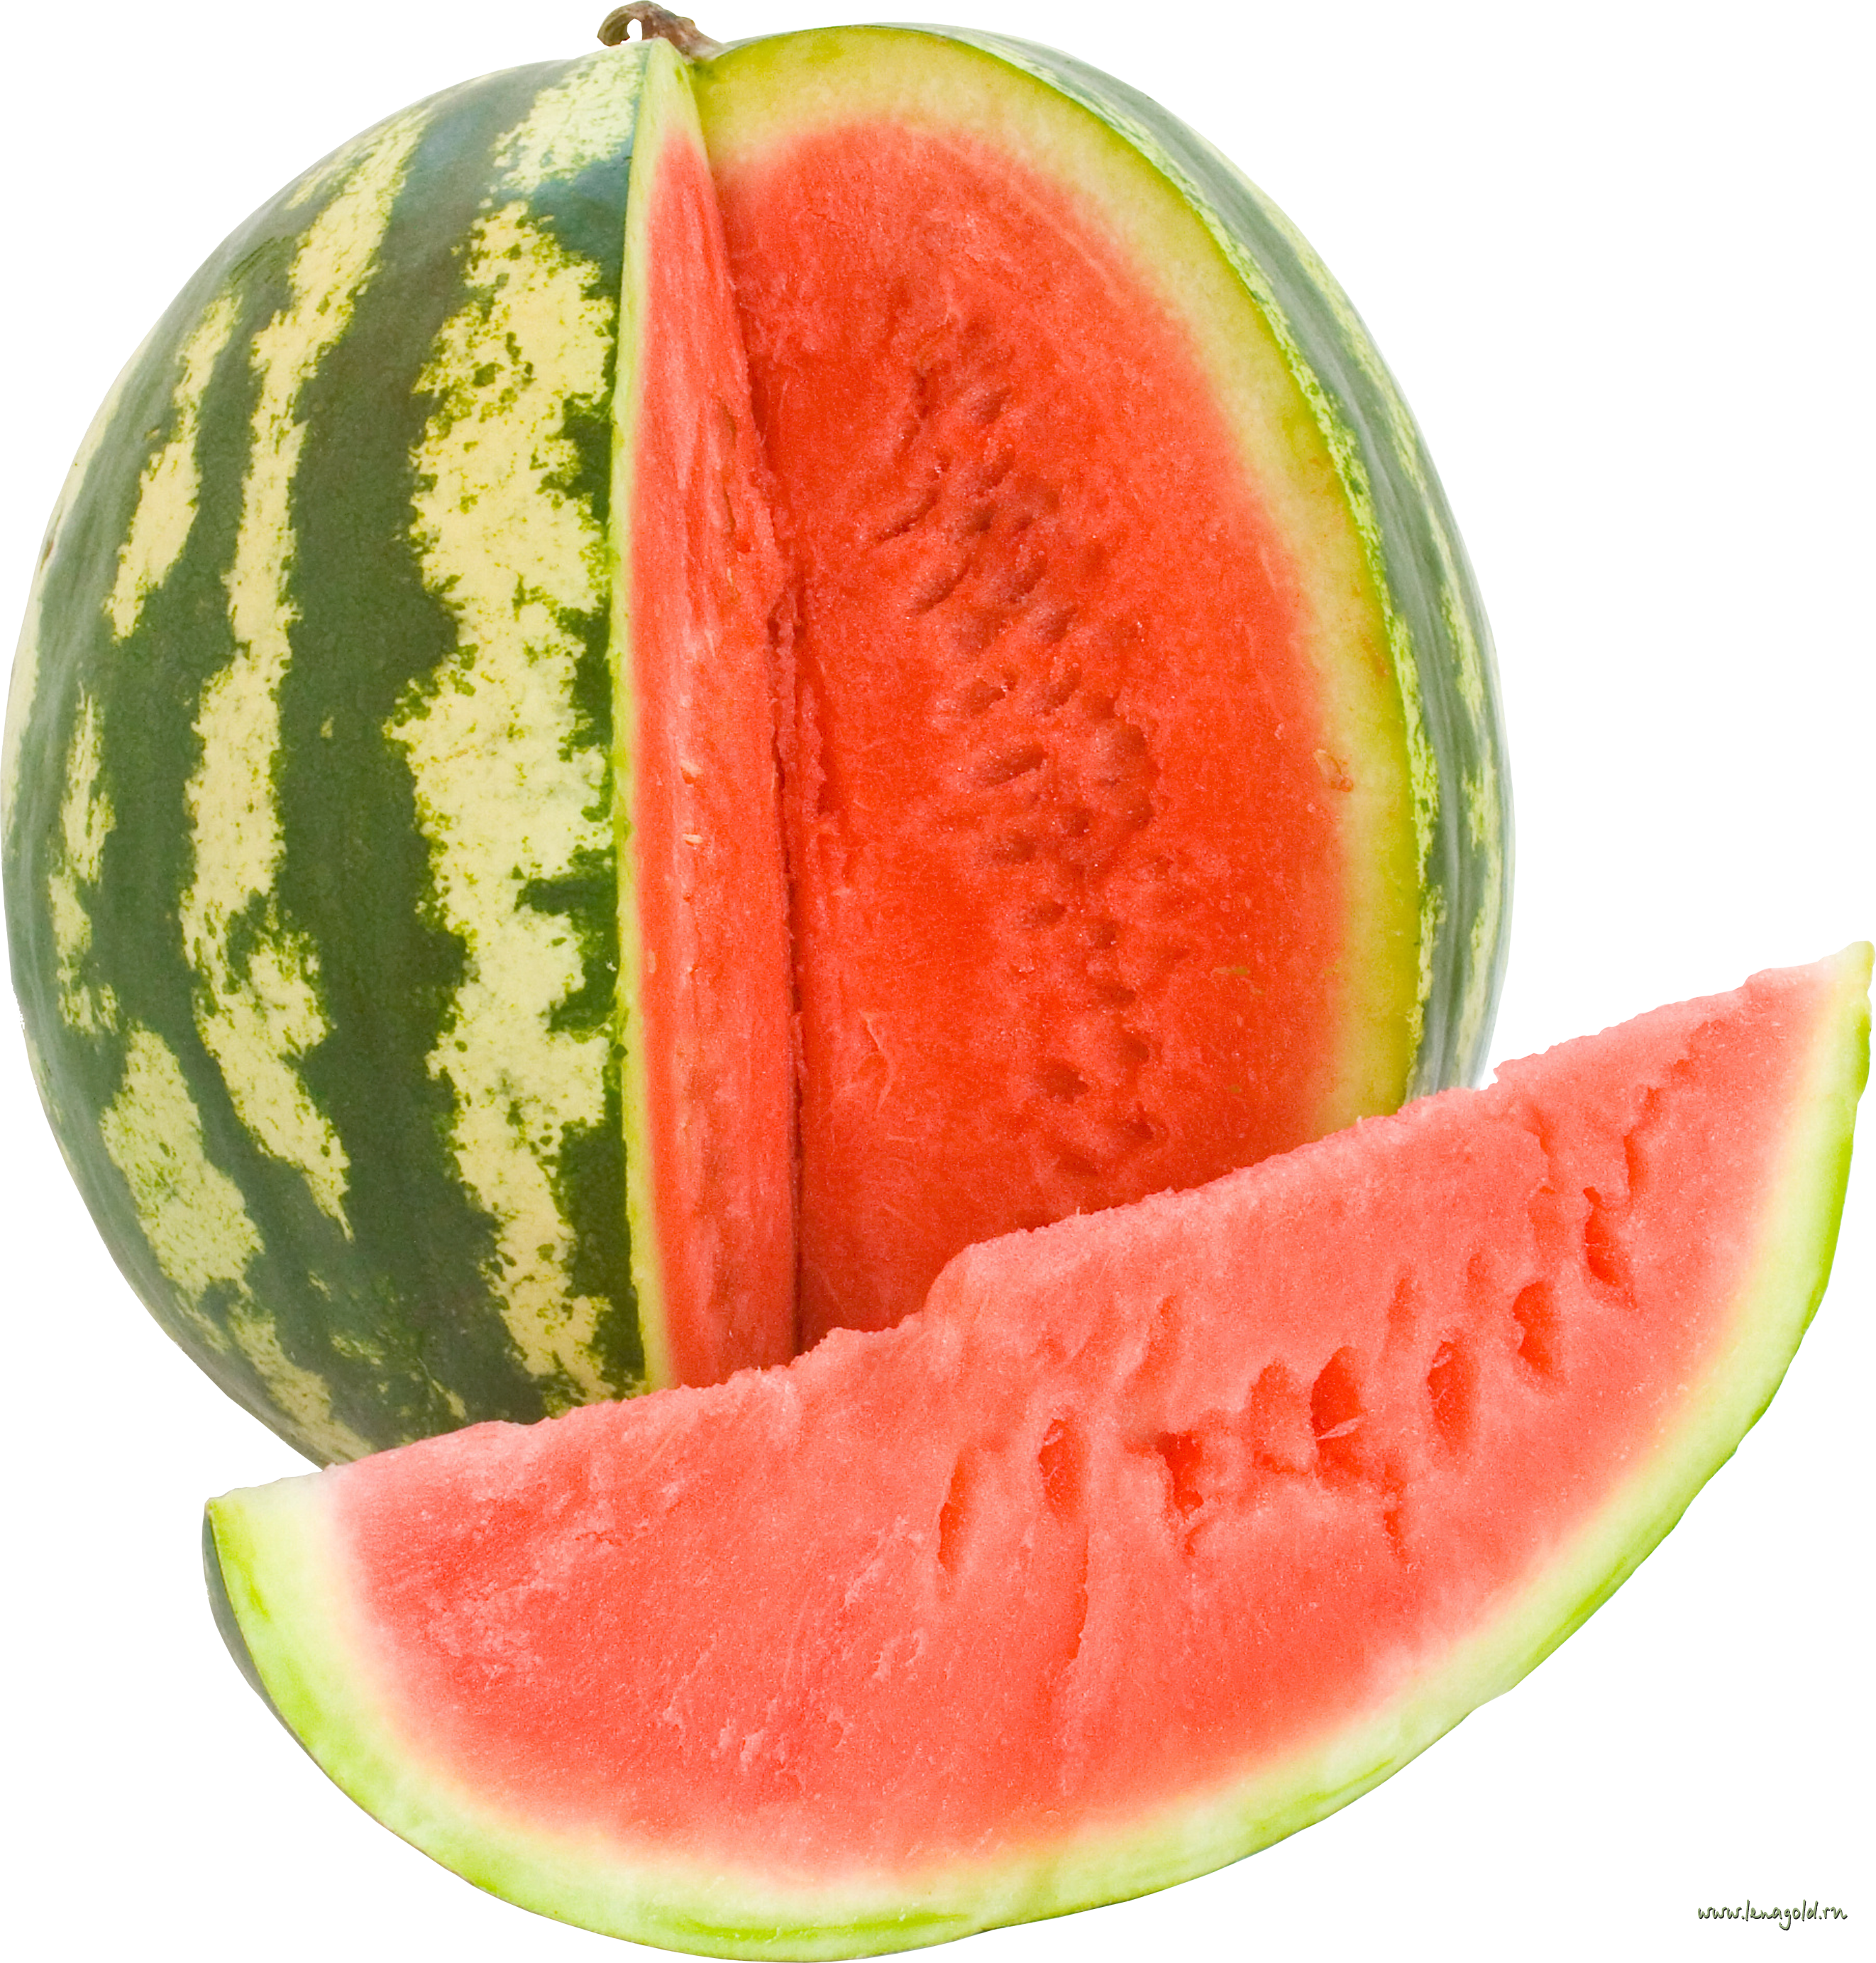 Watermelon png images. Hq transparent pluspng image